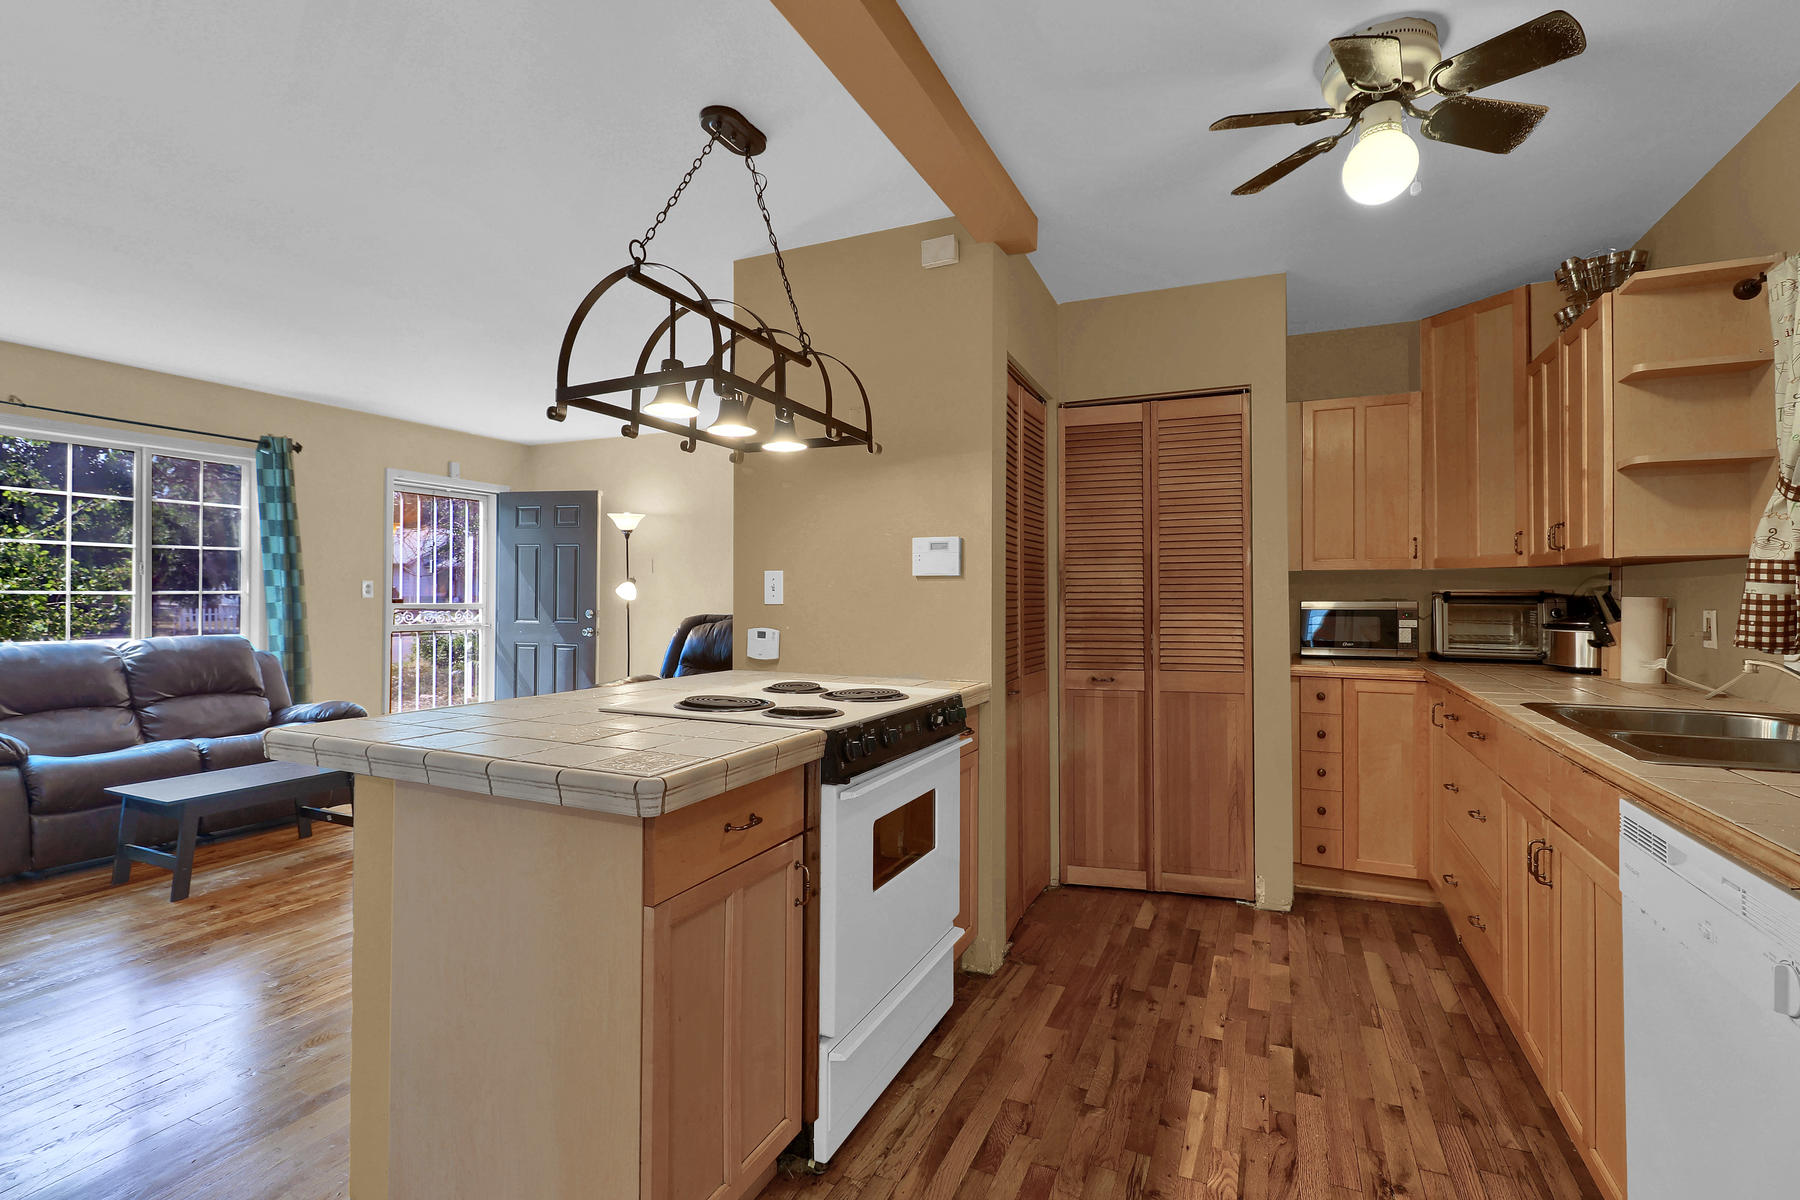 Additional photo for property listing at Clean And Bright Home Offers Three Bedrooms On One-Level Living 1220 Dayton Street Aurora, Colorado 80010 United States